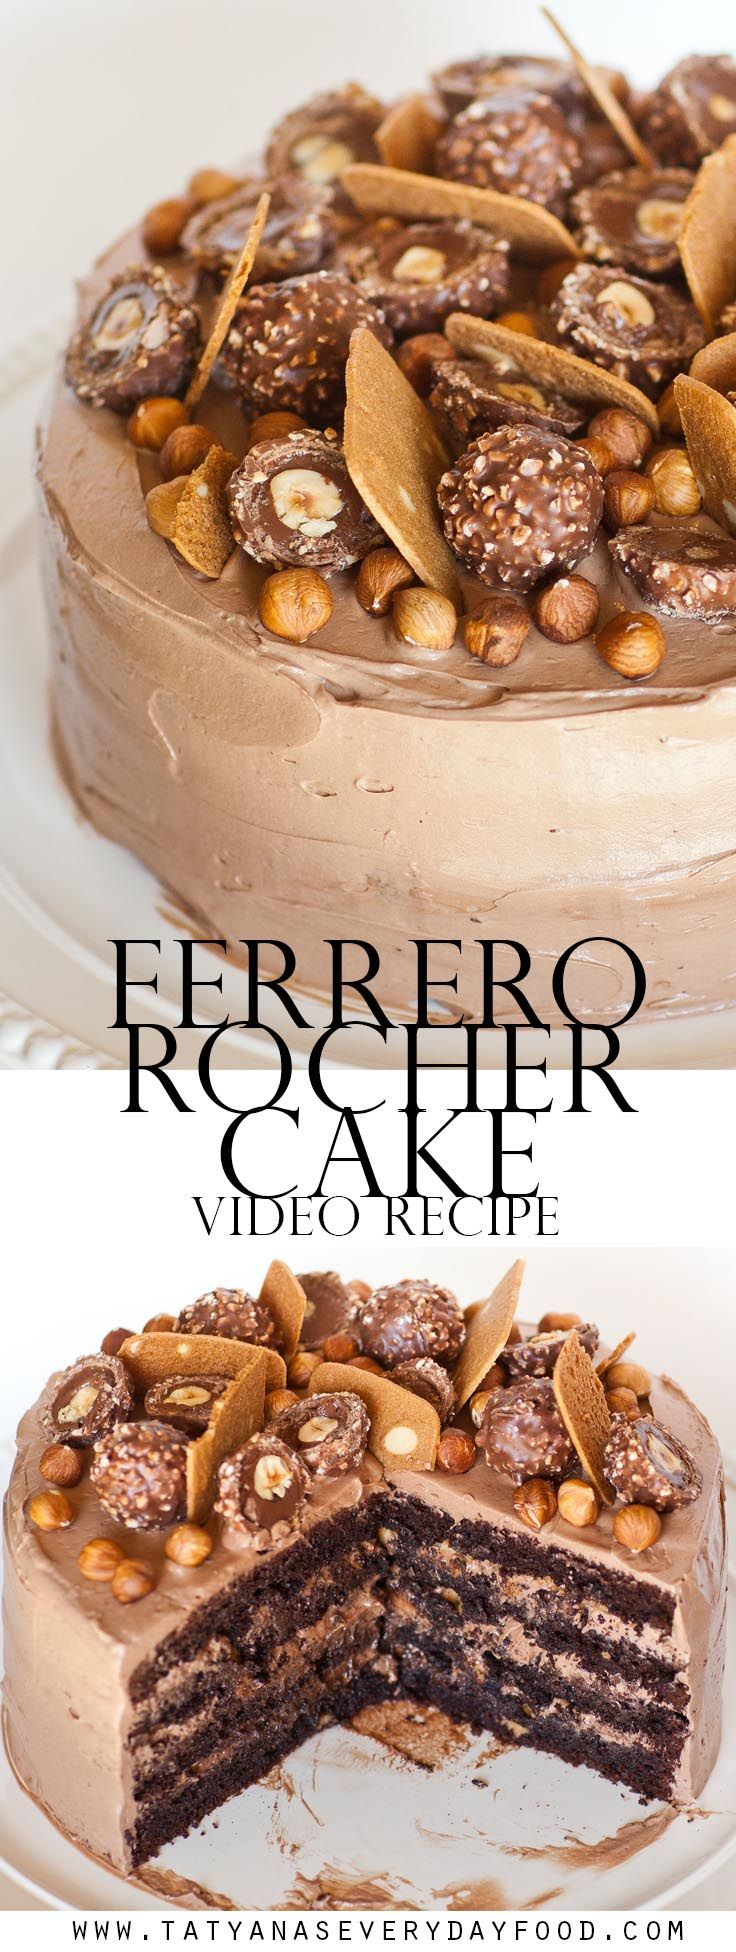 Ferrero Rocher Cake with video recipe {Tatyanas Everyday Food}